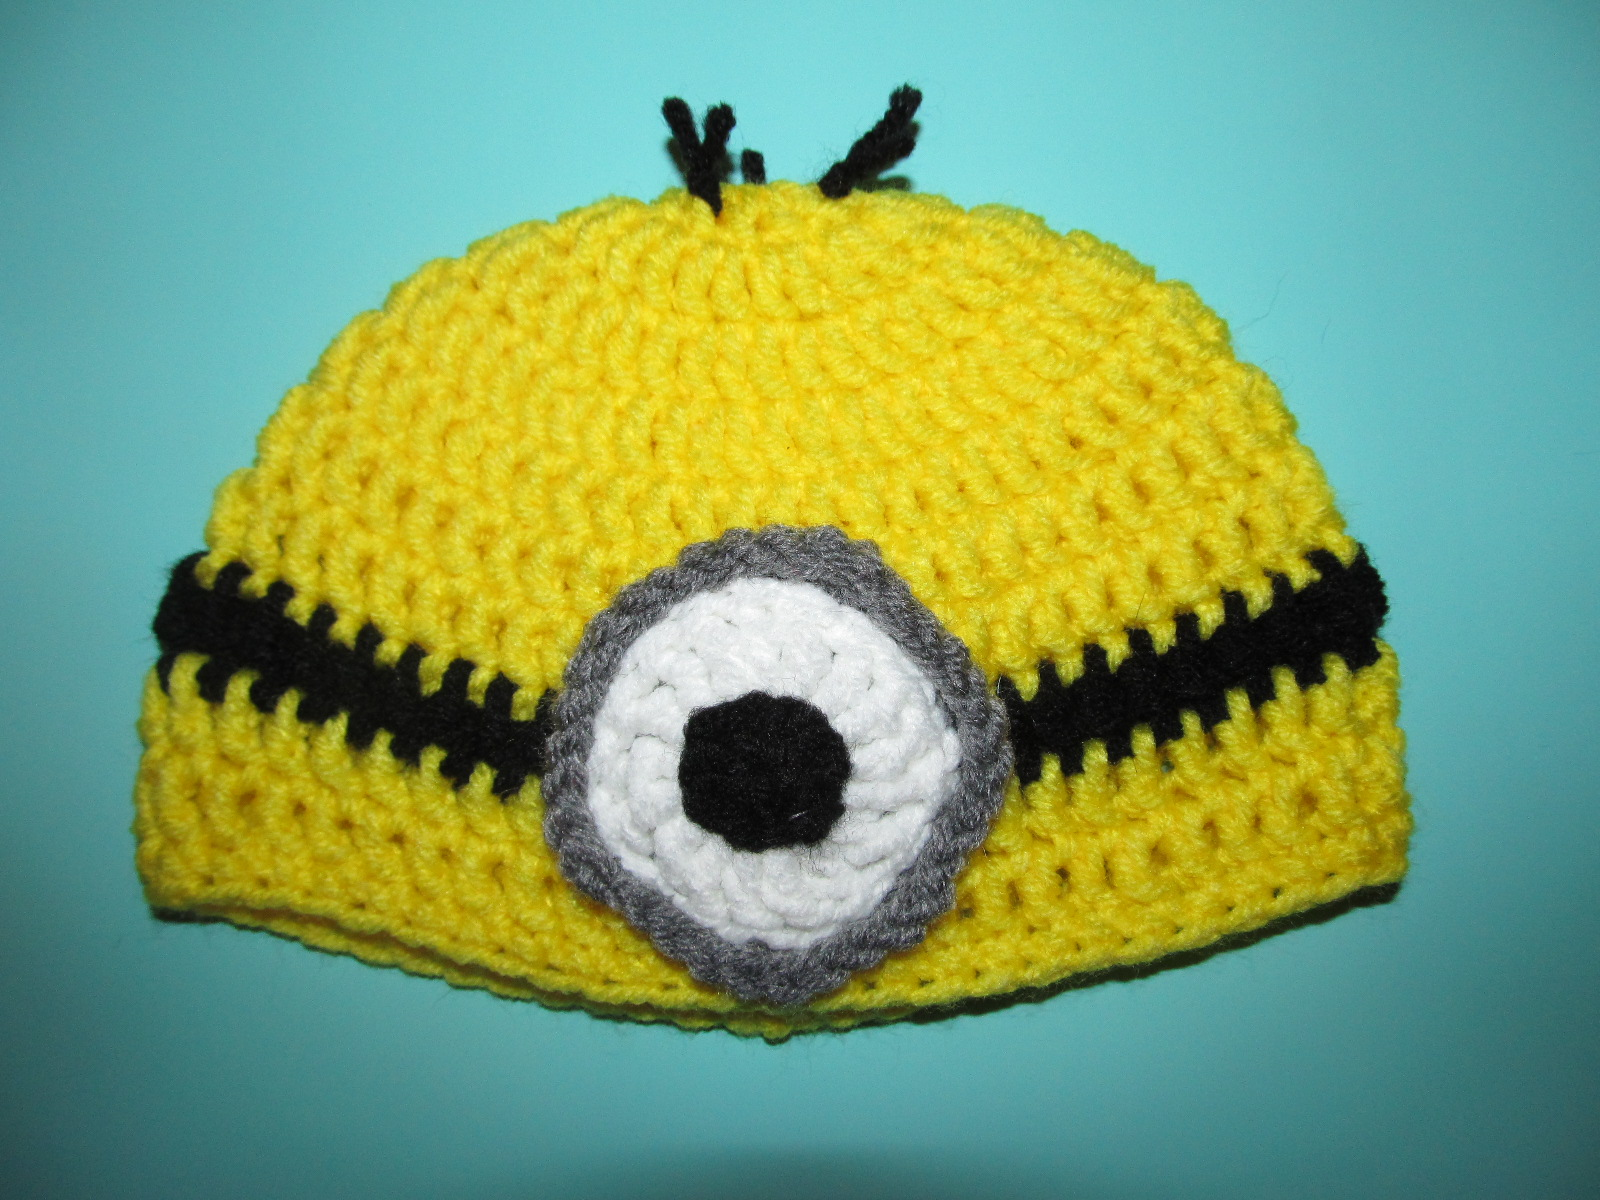 Crochet Me : Simply Crochet and Other Crafts: Despicable Me Minions Crochet Hat